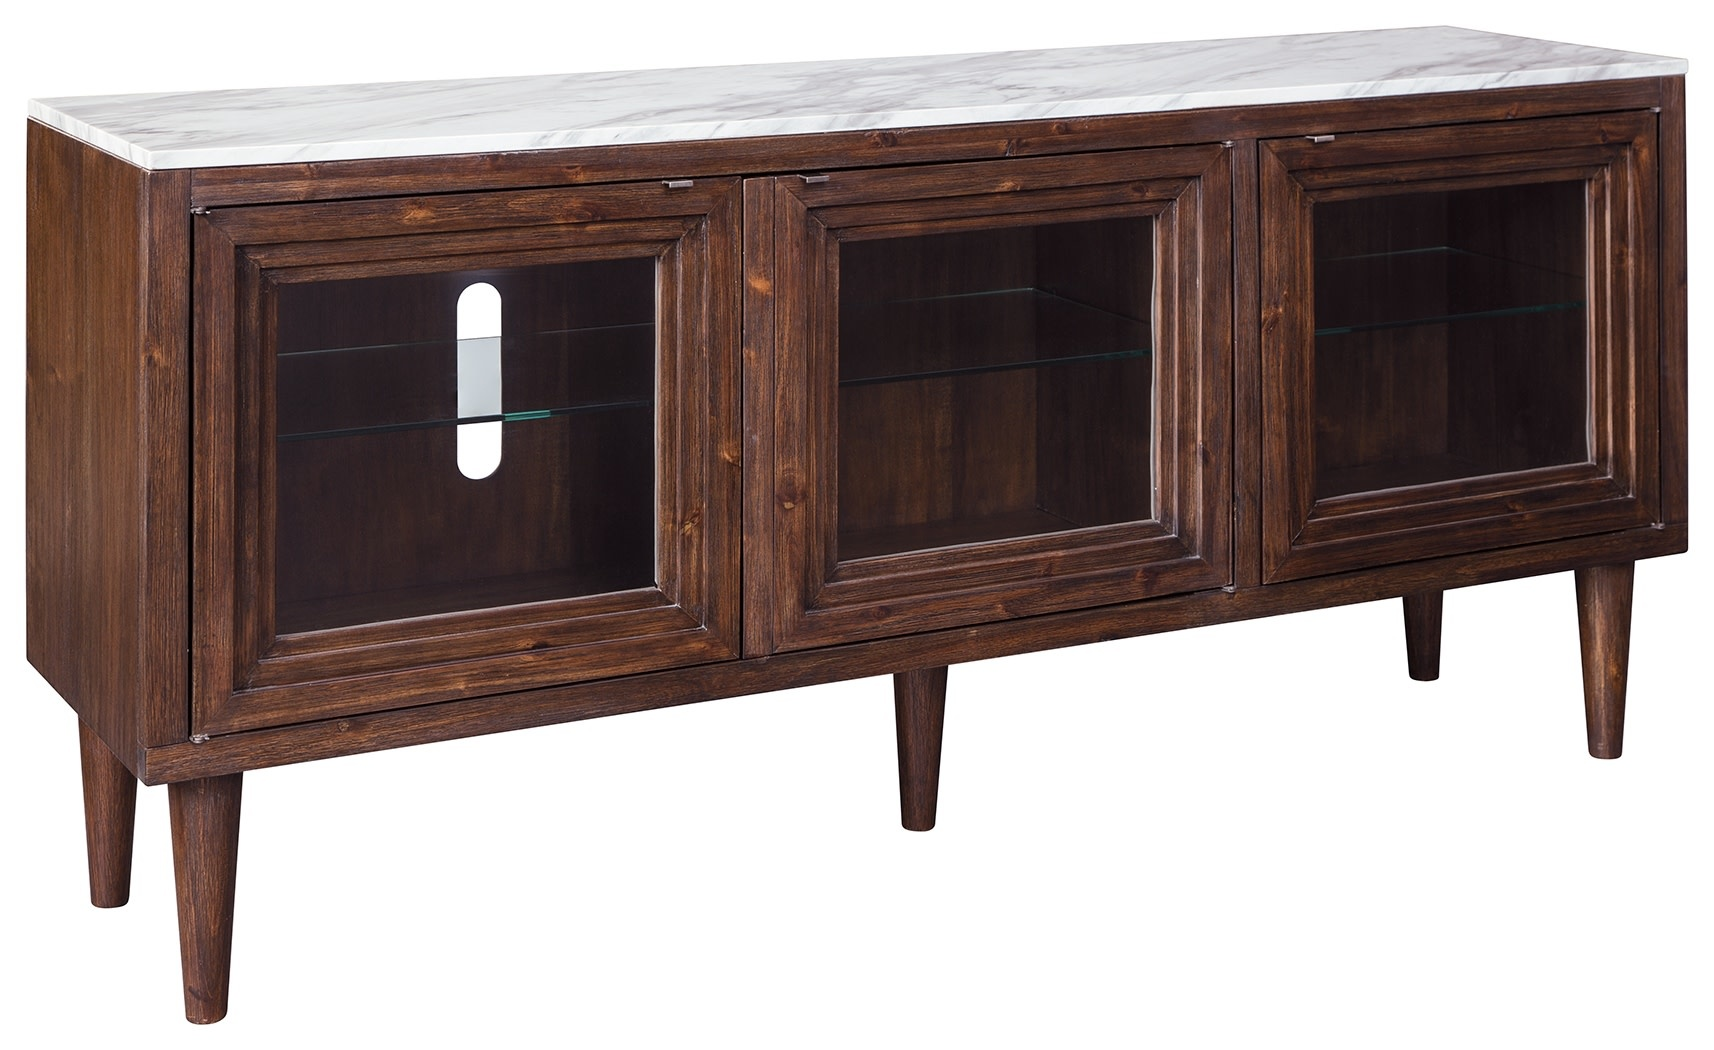 Signature Design Graybourne- Accent Cabinet- Brown w/ Faux Marble Top A4000244